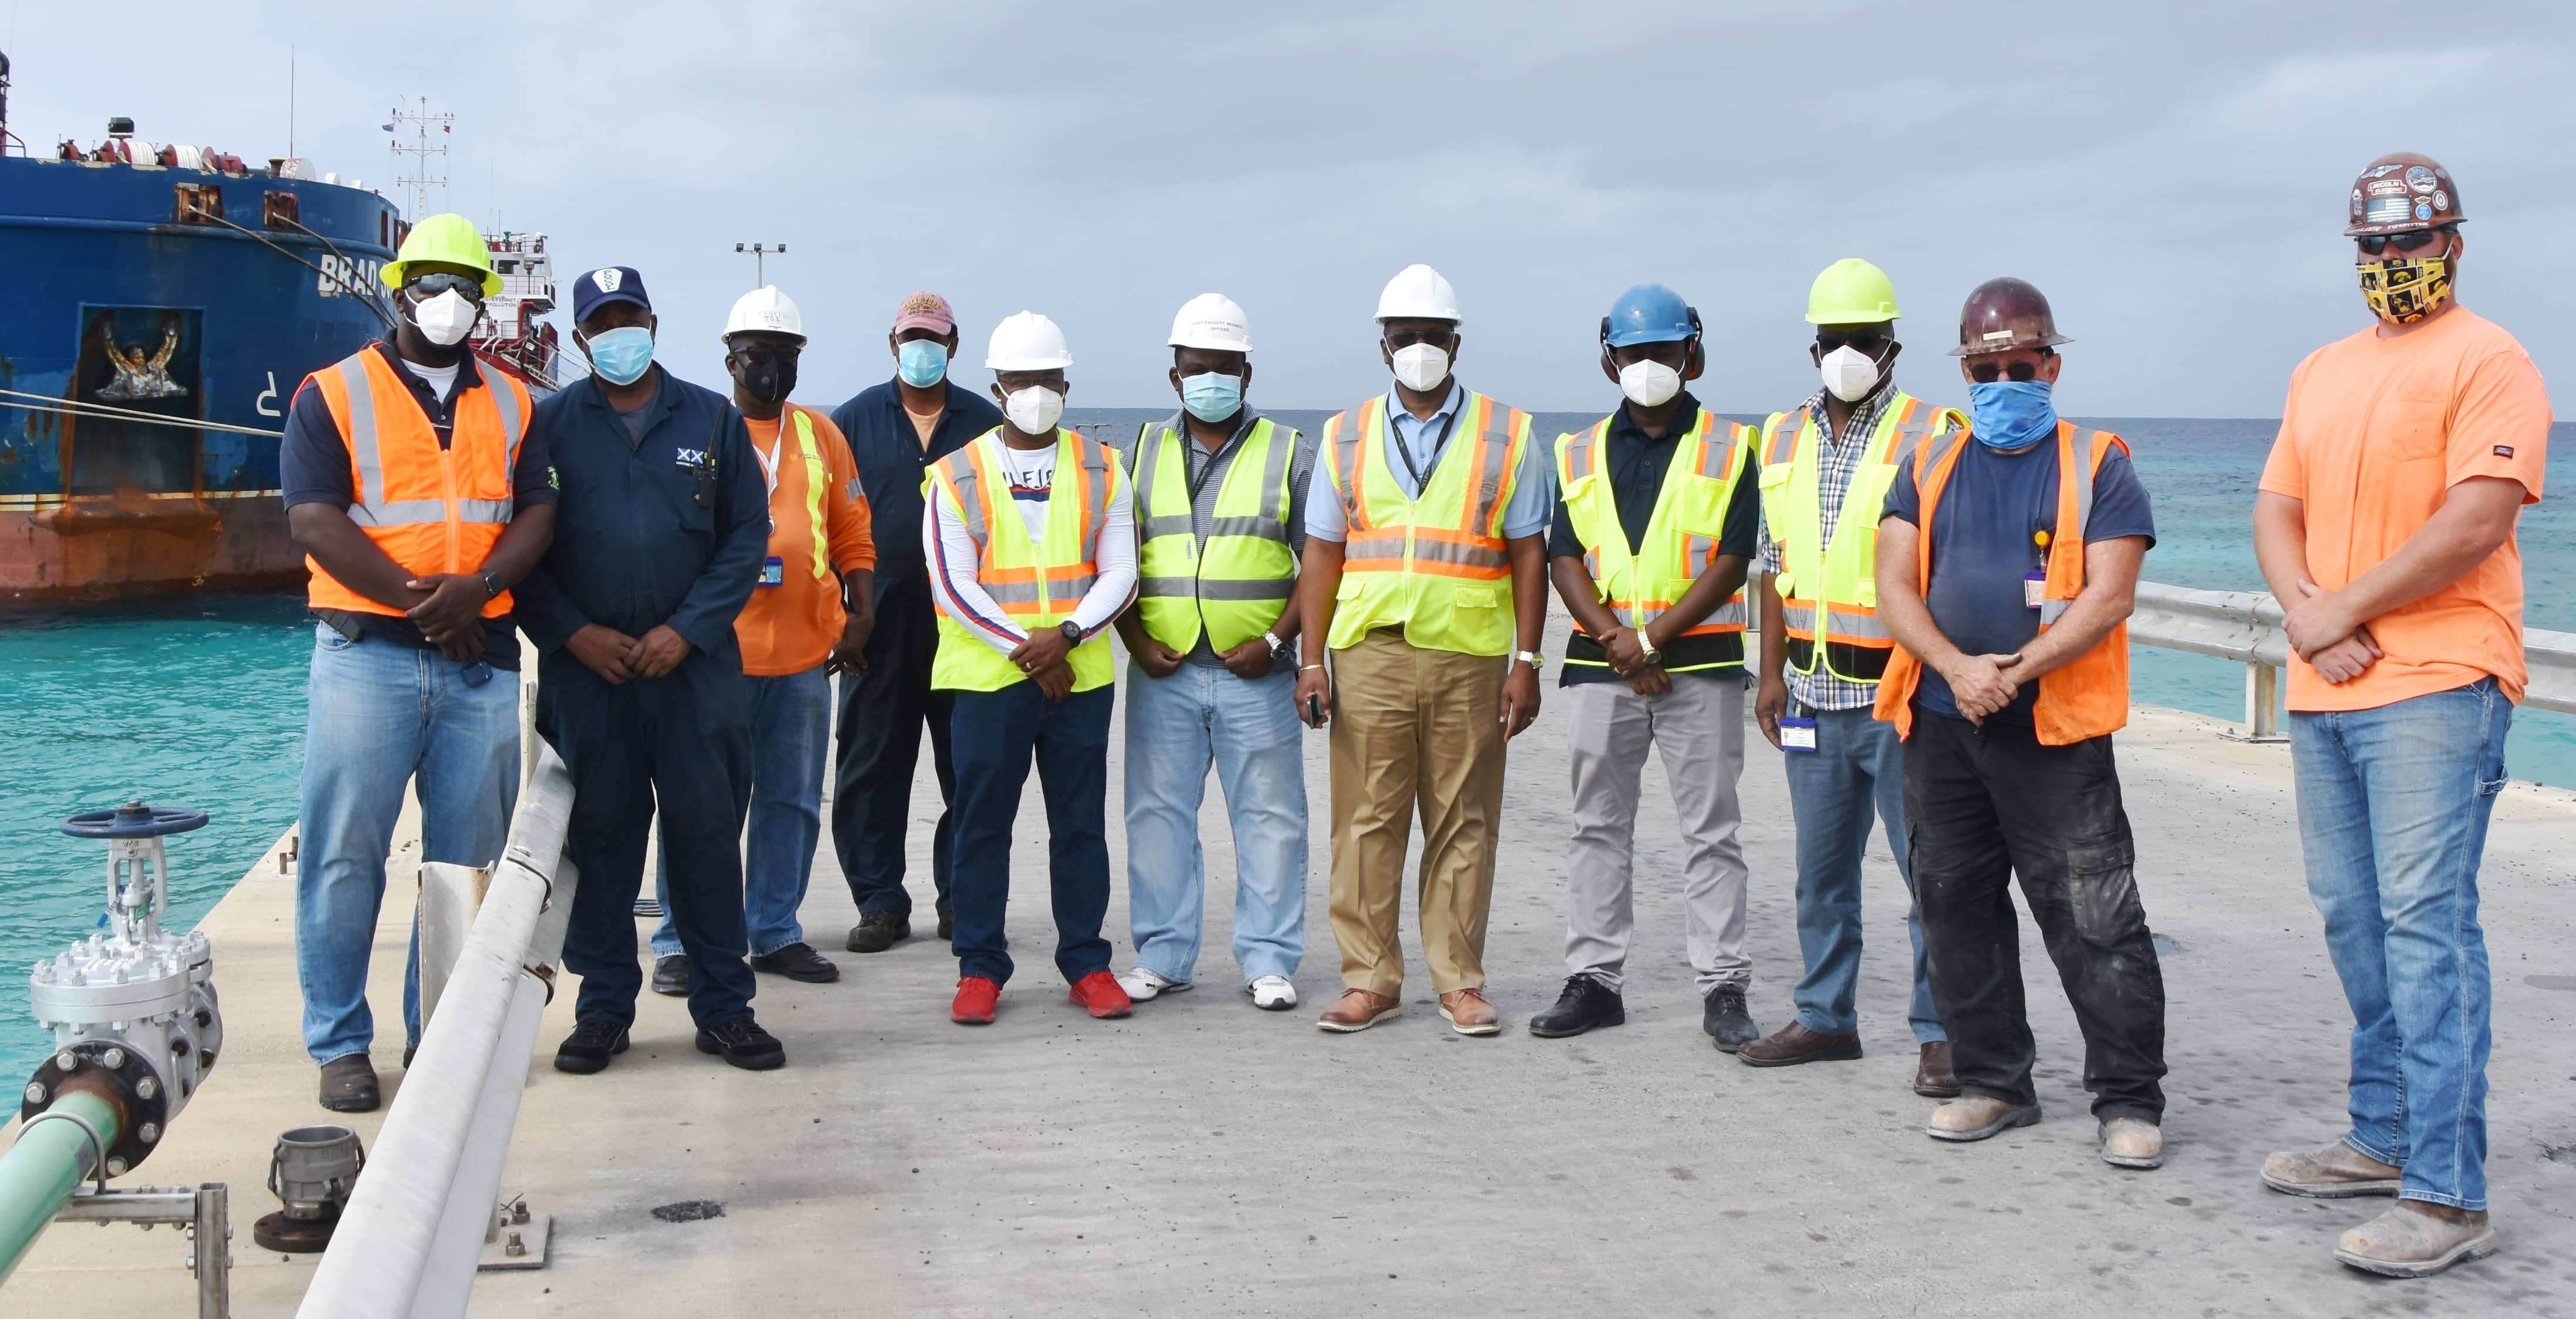 FortisTCI Commissions New 1,500-Foot Fuel Pipeline in Grand Turk